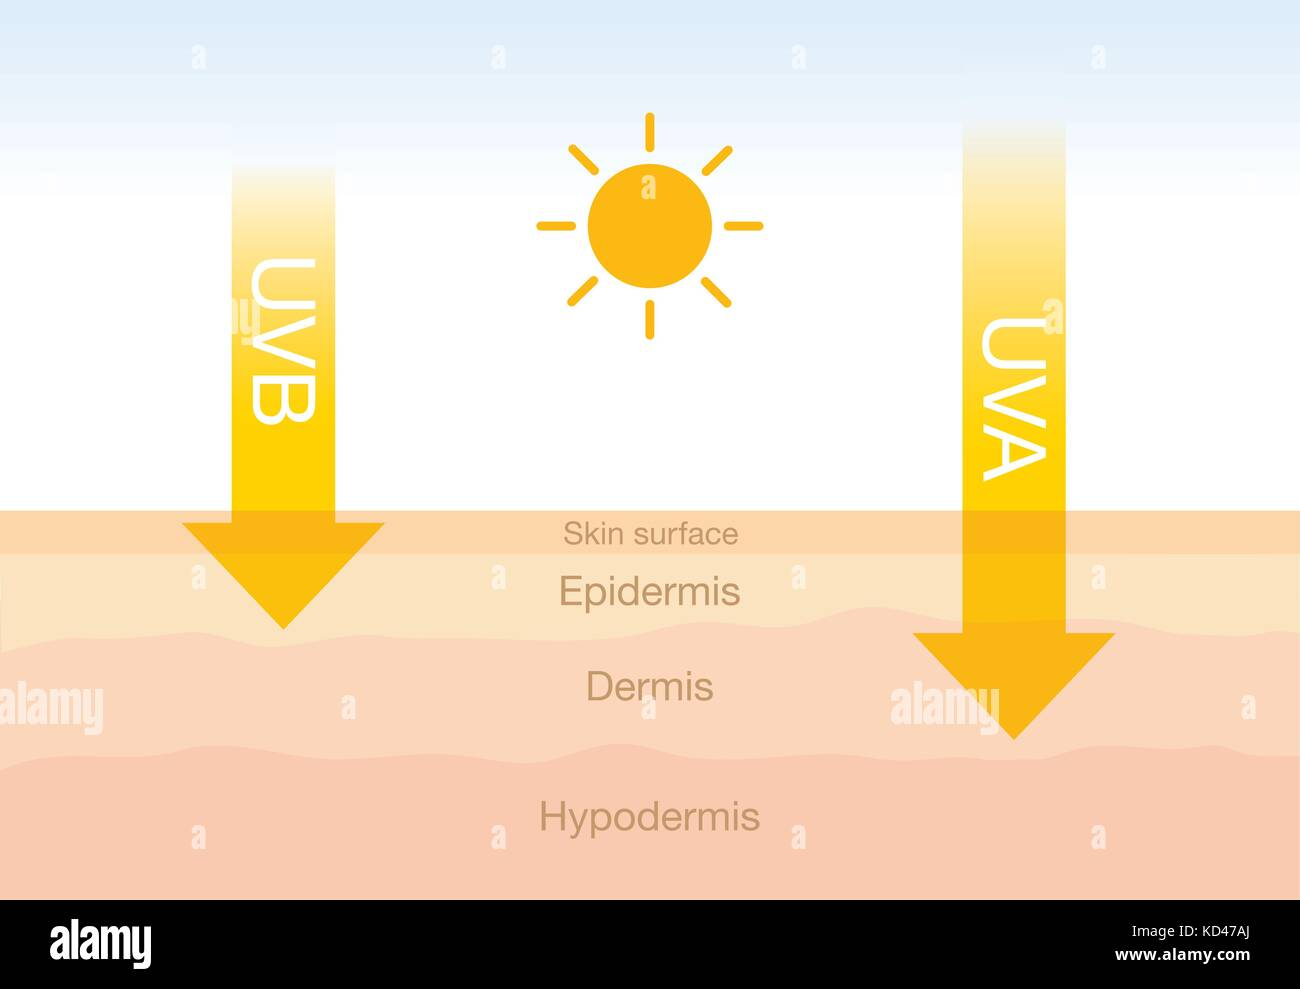 The difference of radiation 2 types in sunlight with skin. - Stock Vector